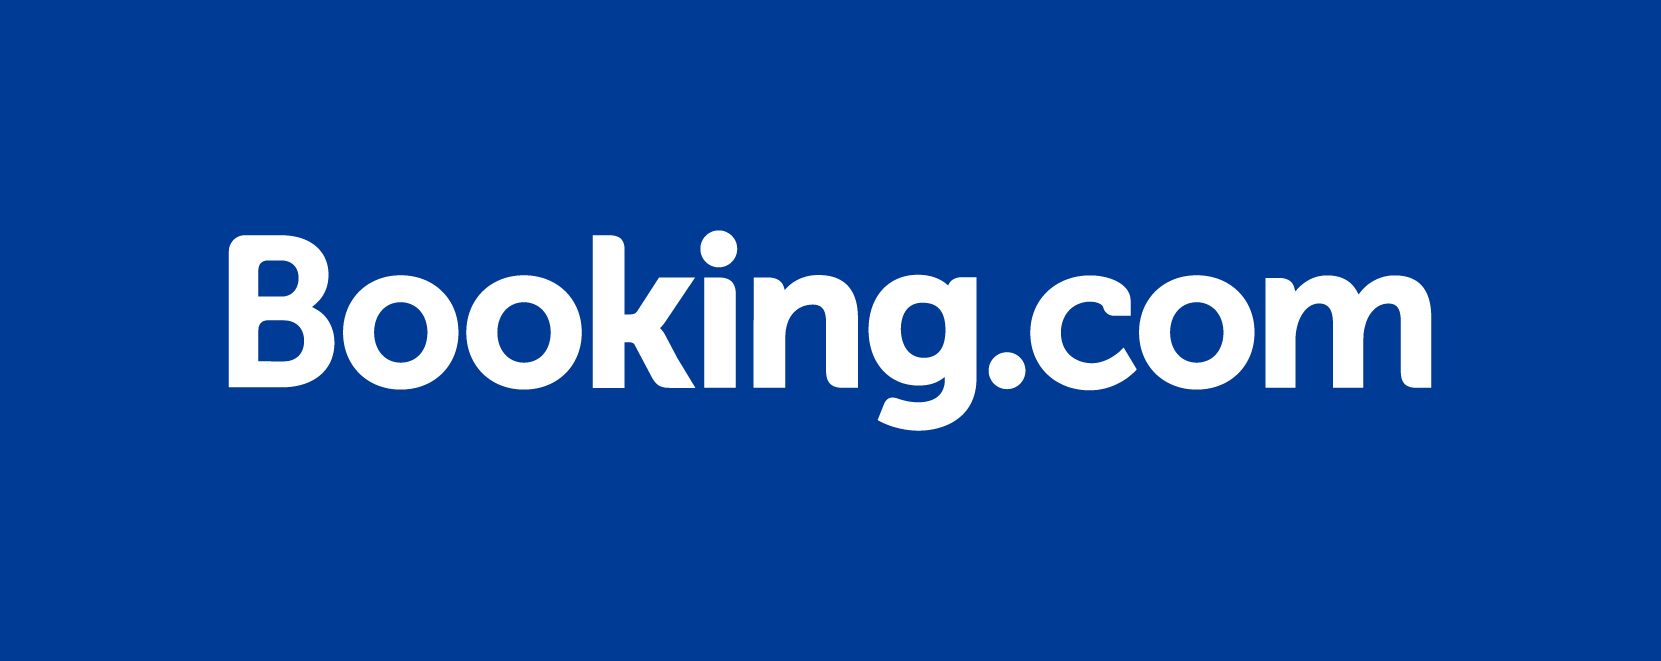 Booking.com Voucher Codes